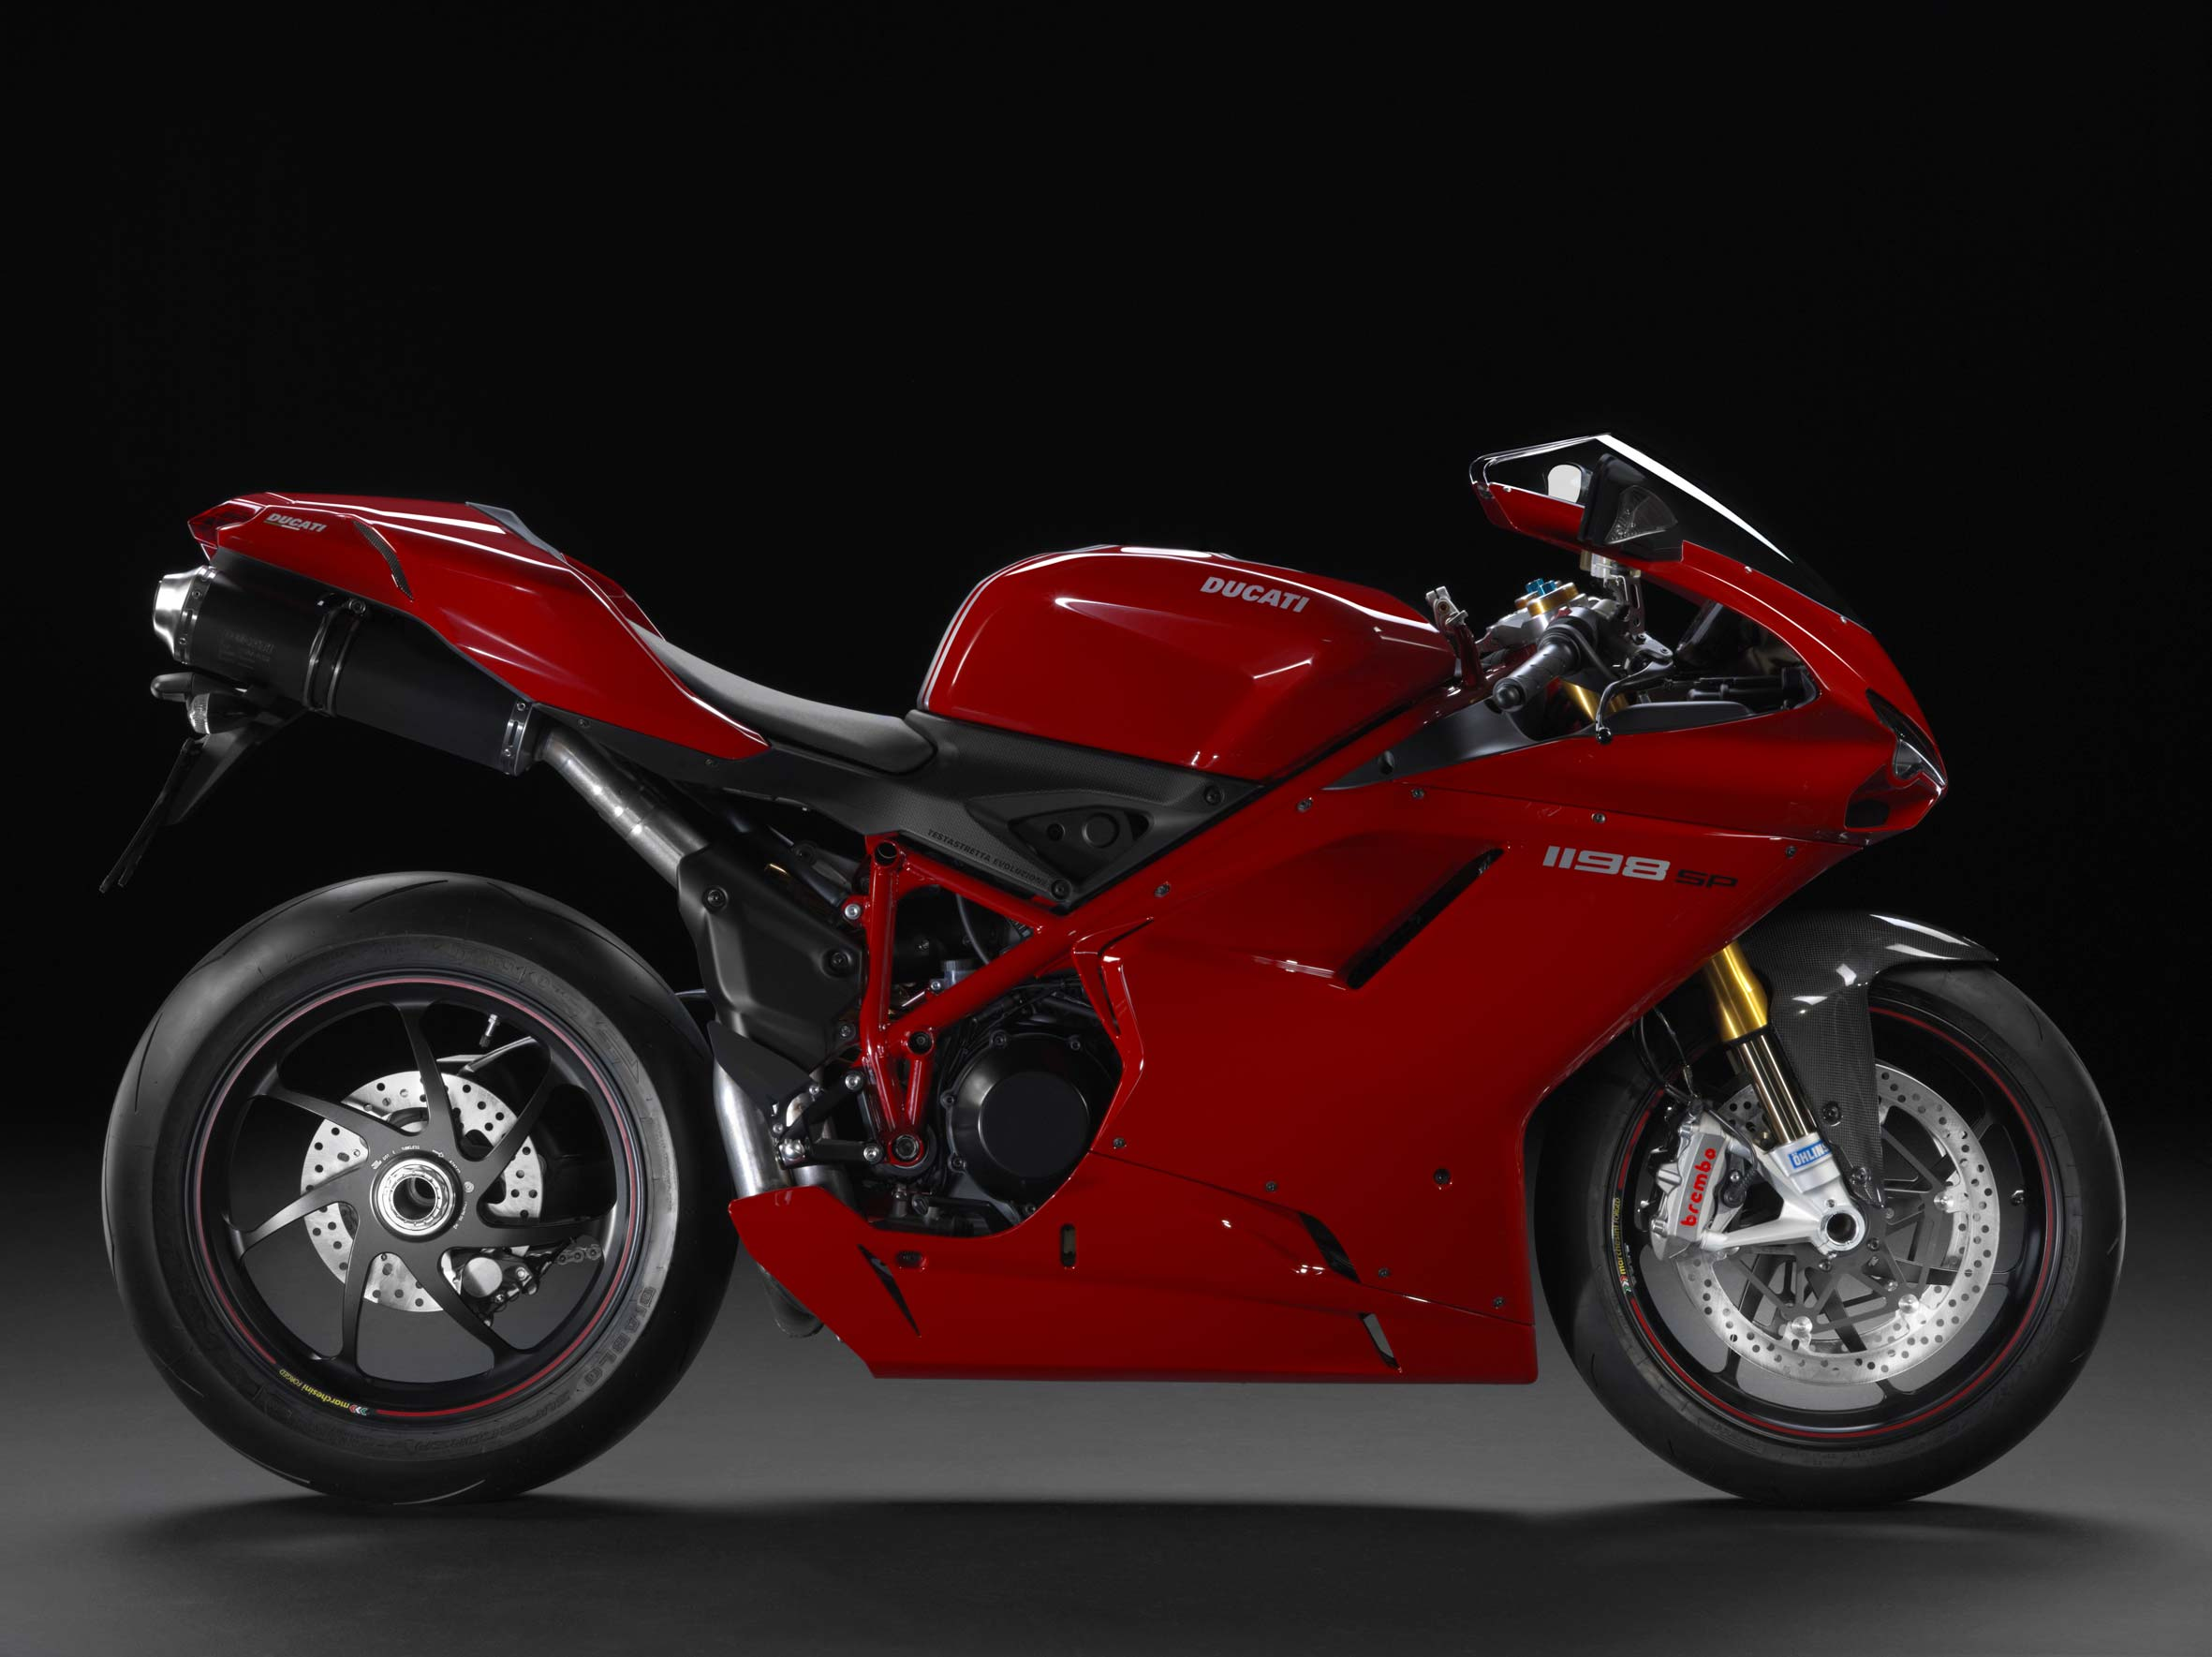 2011 ducati superbike 1198 sp replaces ducati's middle-spec